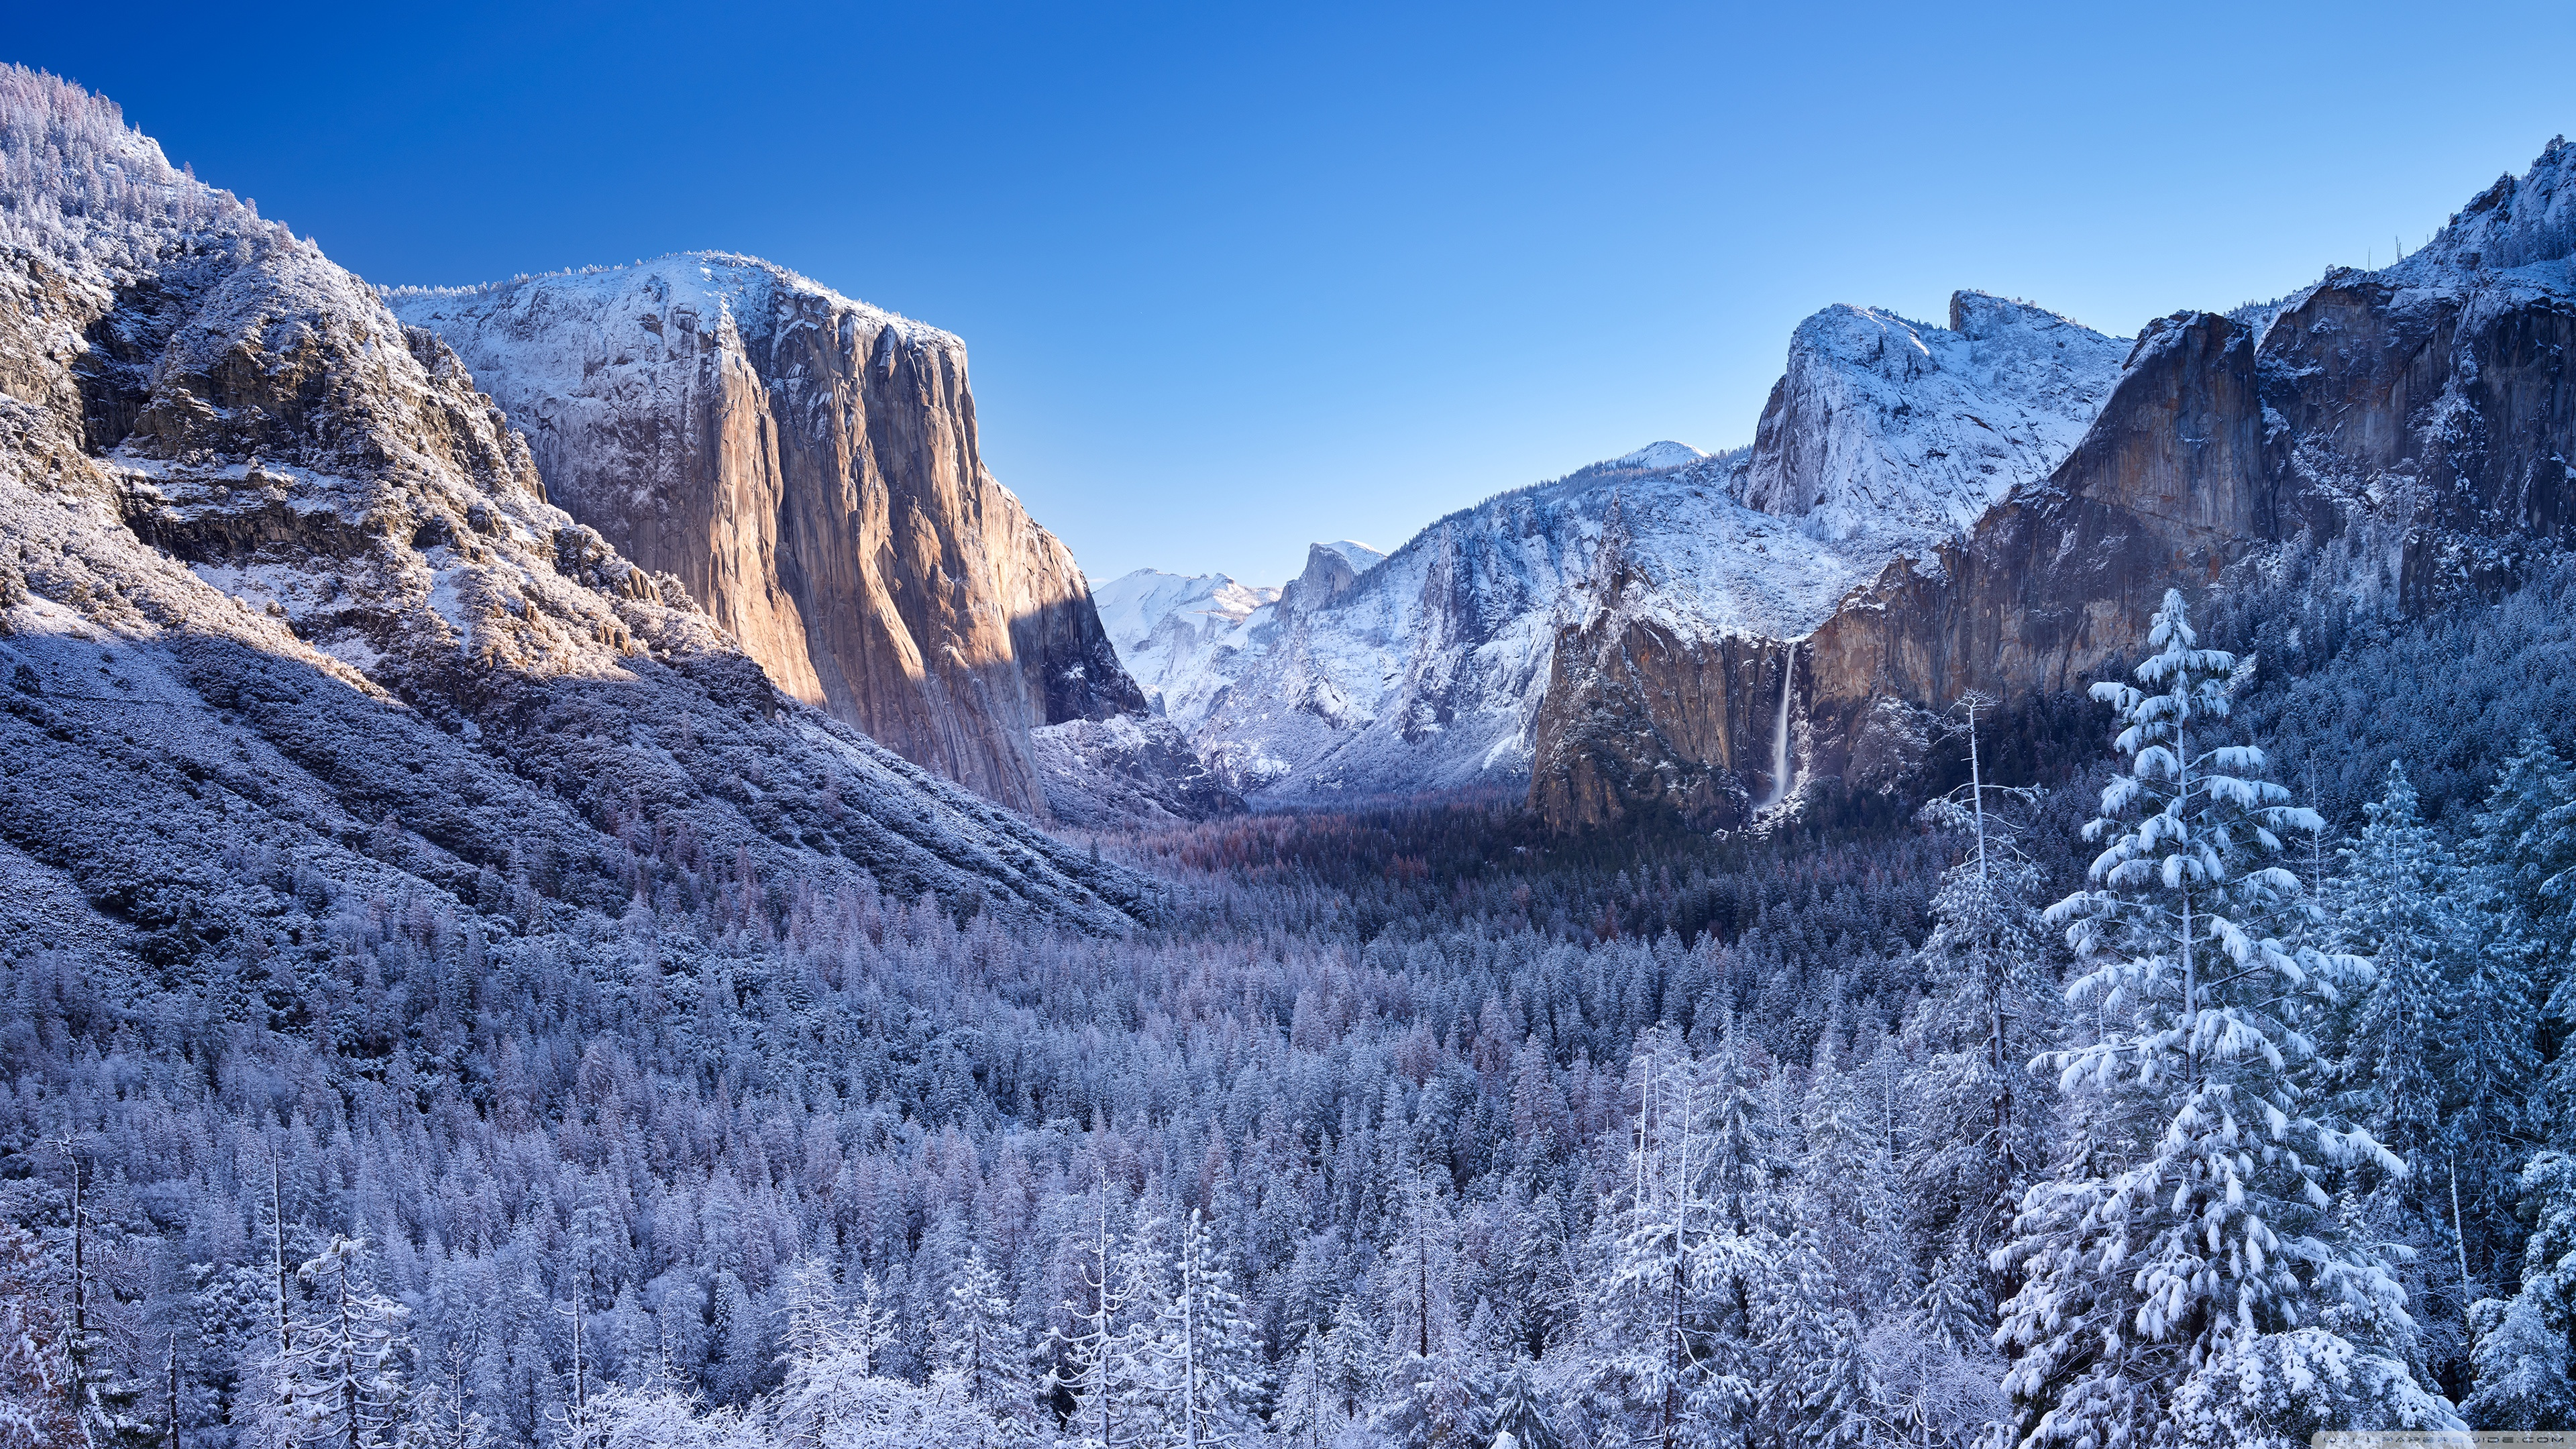 yosemite in winter wallpaper